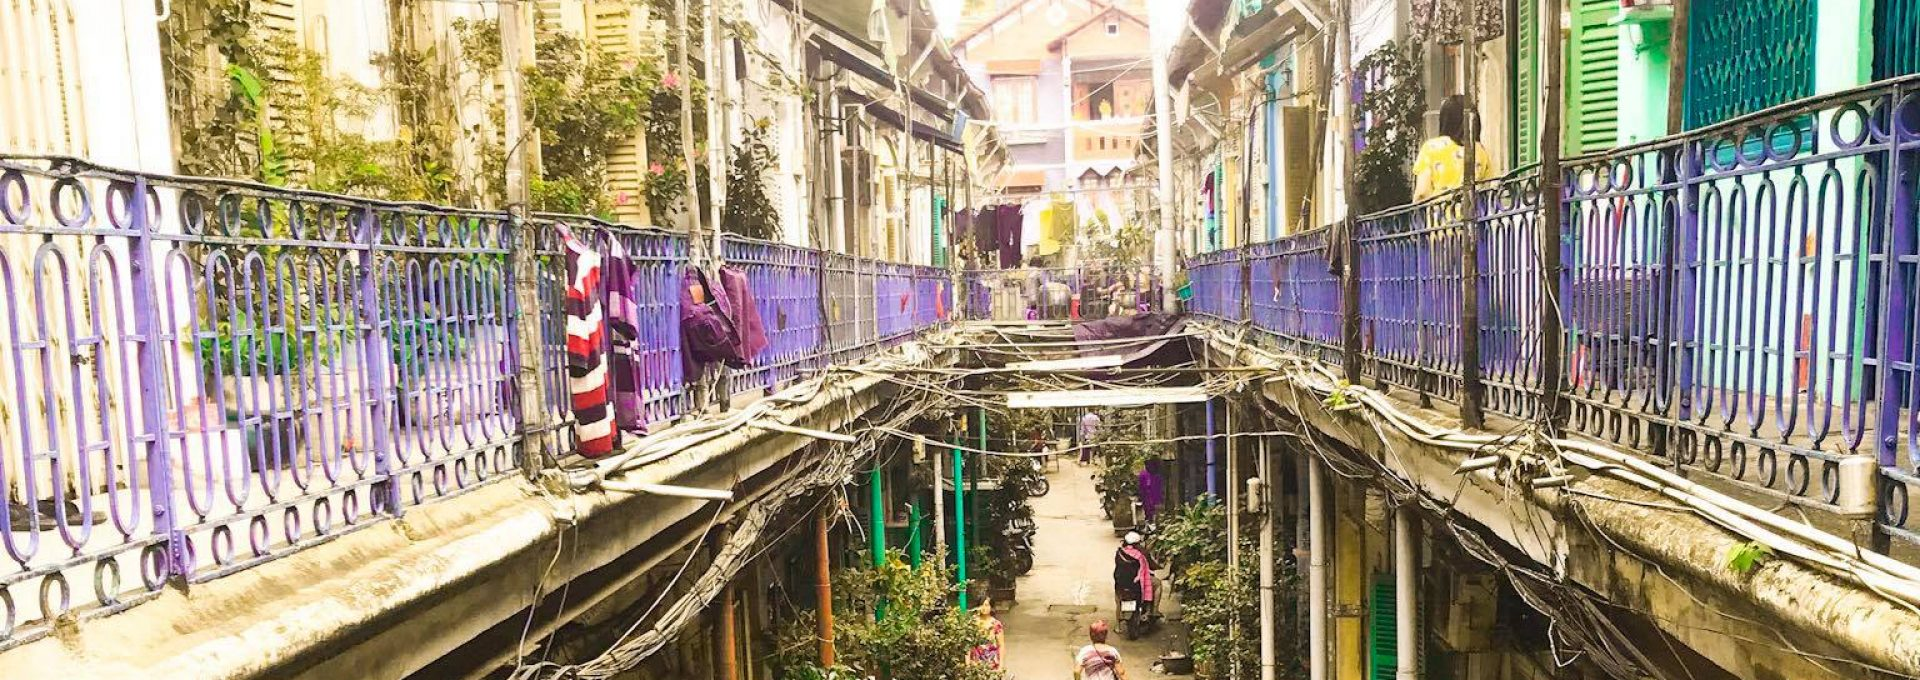 We will take you to some hidden places in Saigon where you can witness how a normal day of a local goes.